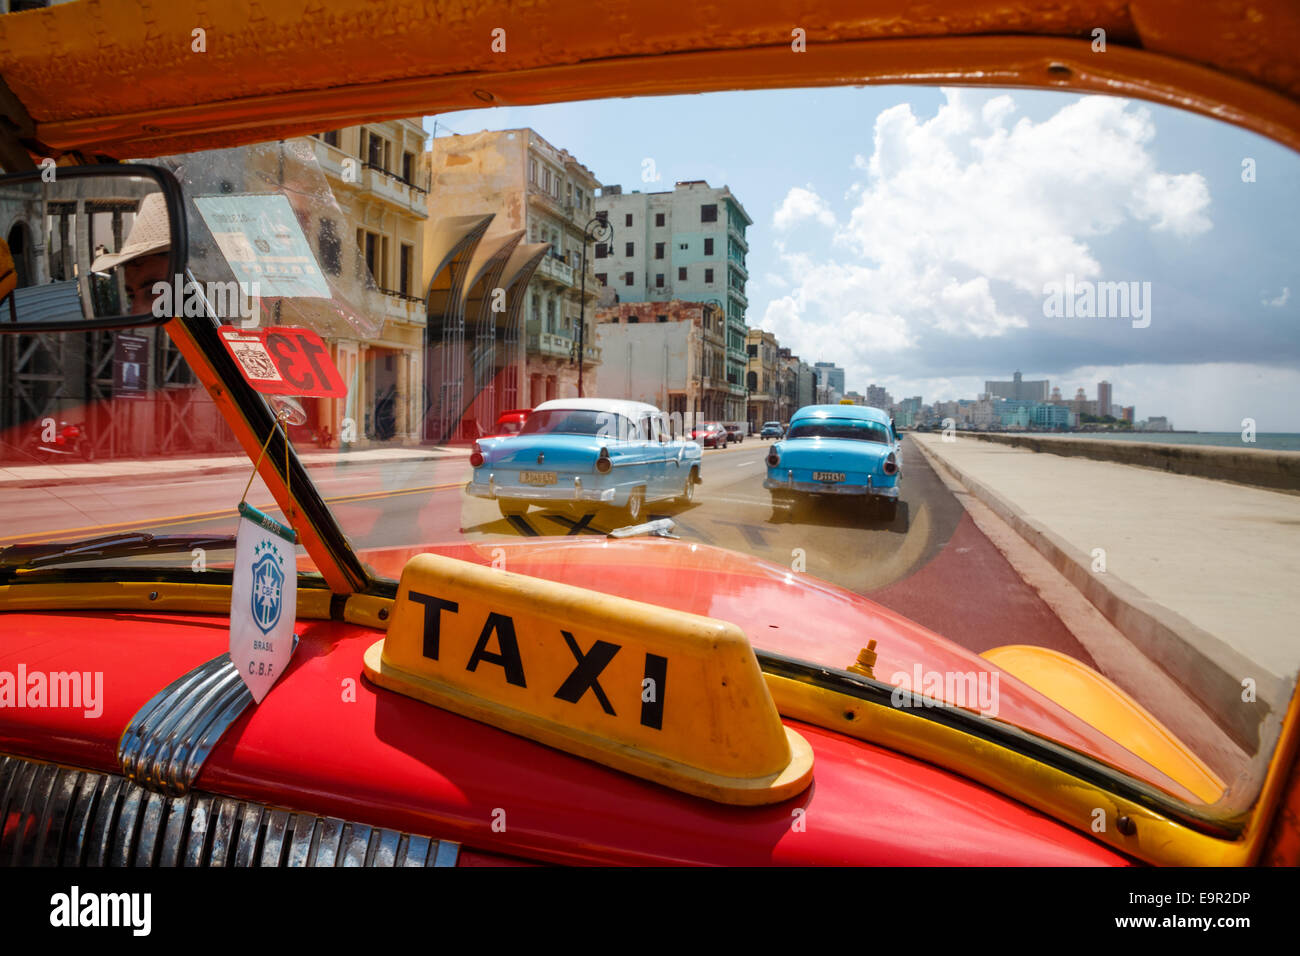 Editorial Use Only] Old classic cars used as taxis in Havana Stock ...